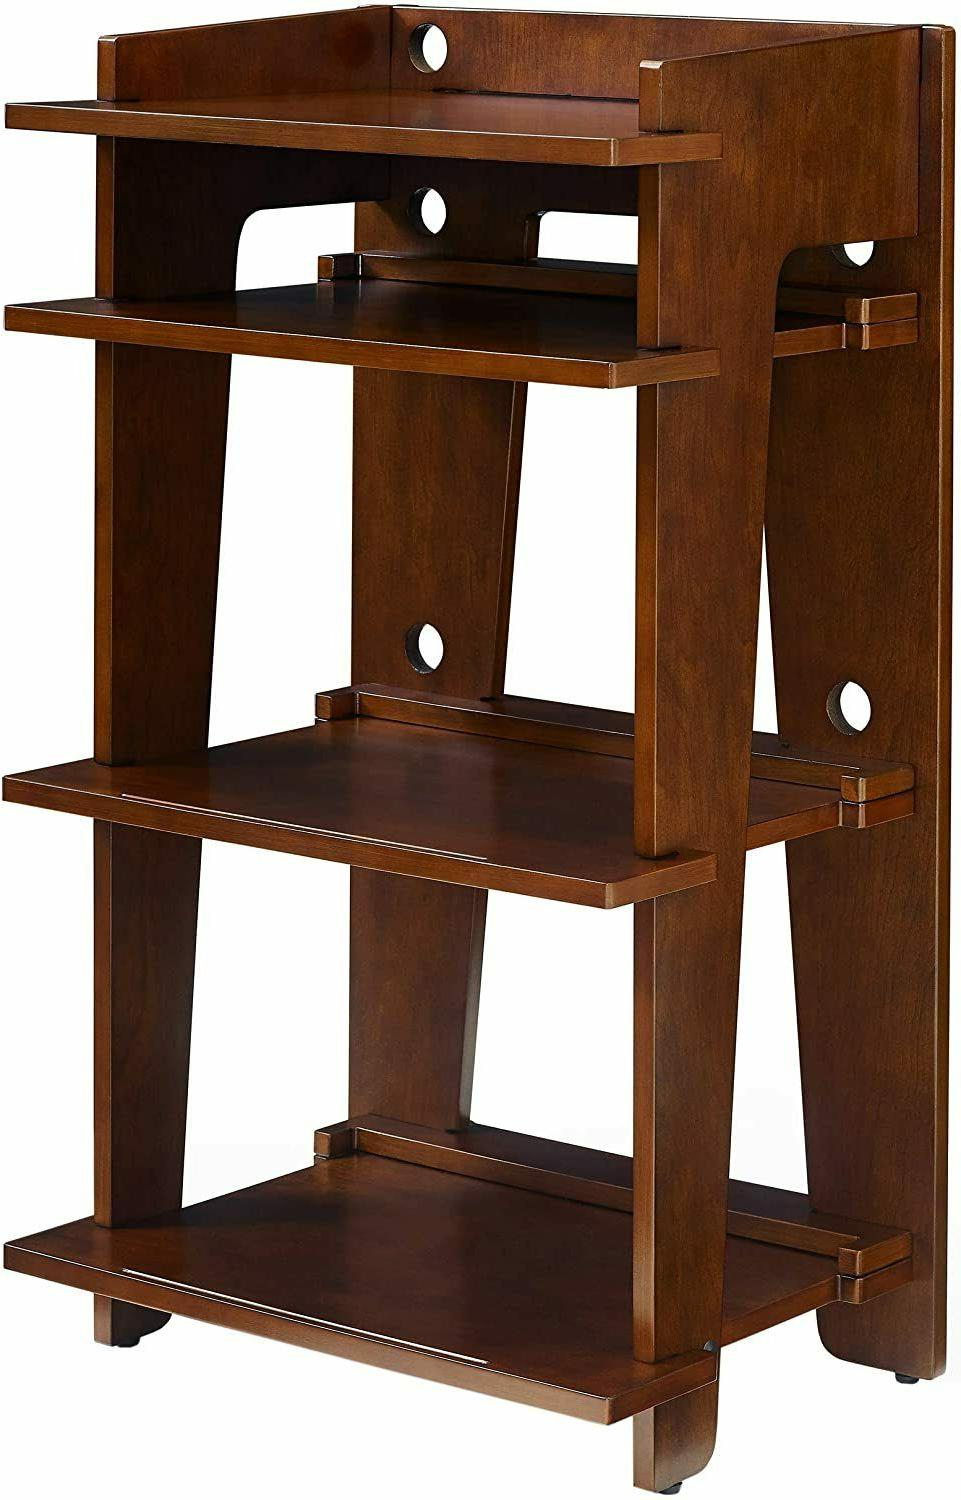 Home Wood Player Stand Media Storage